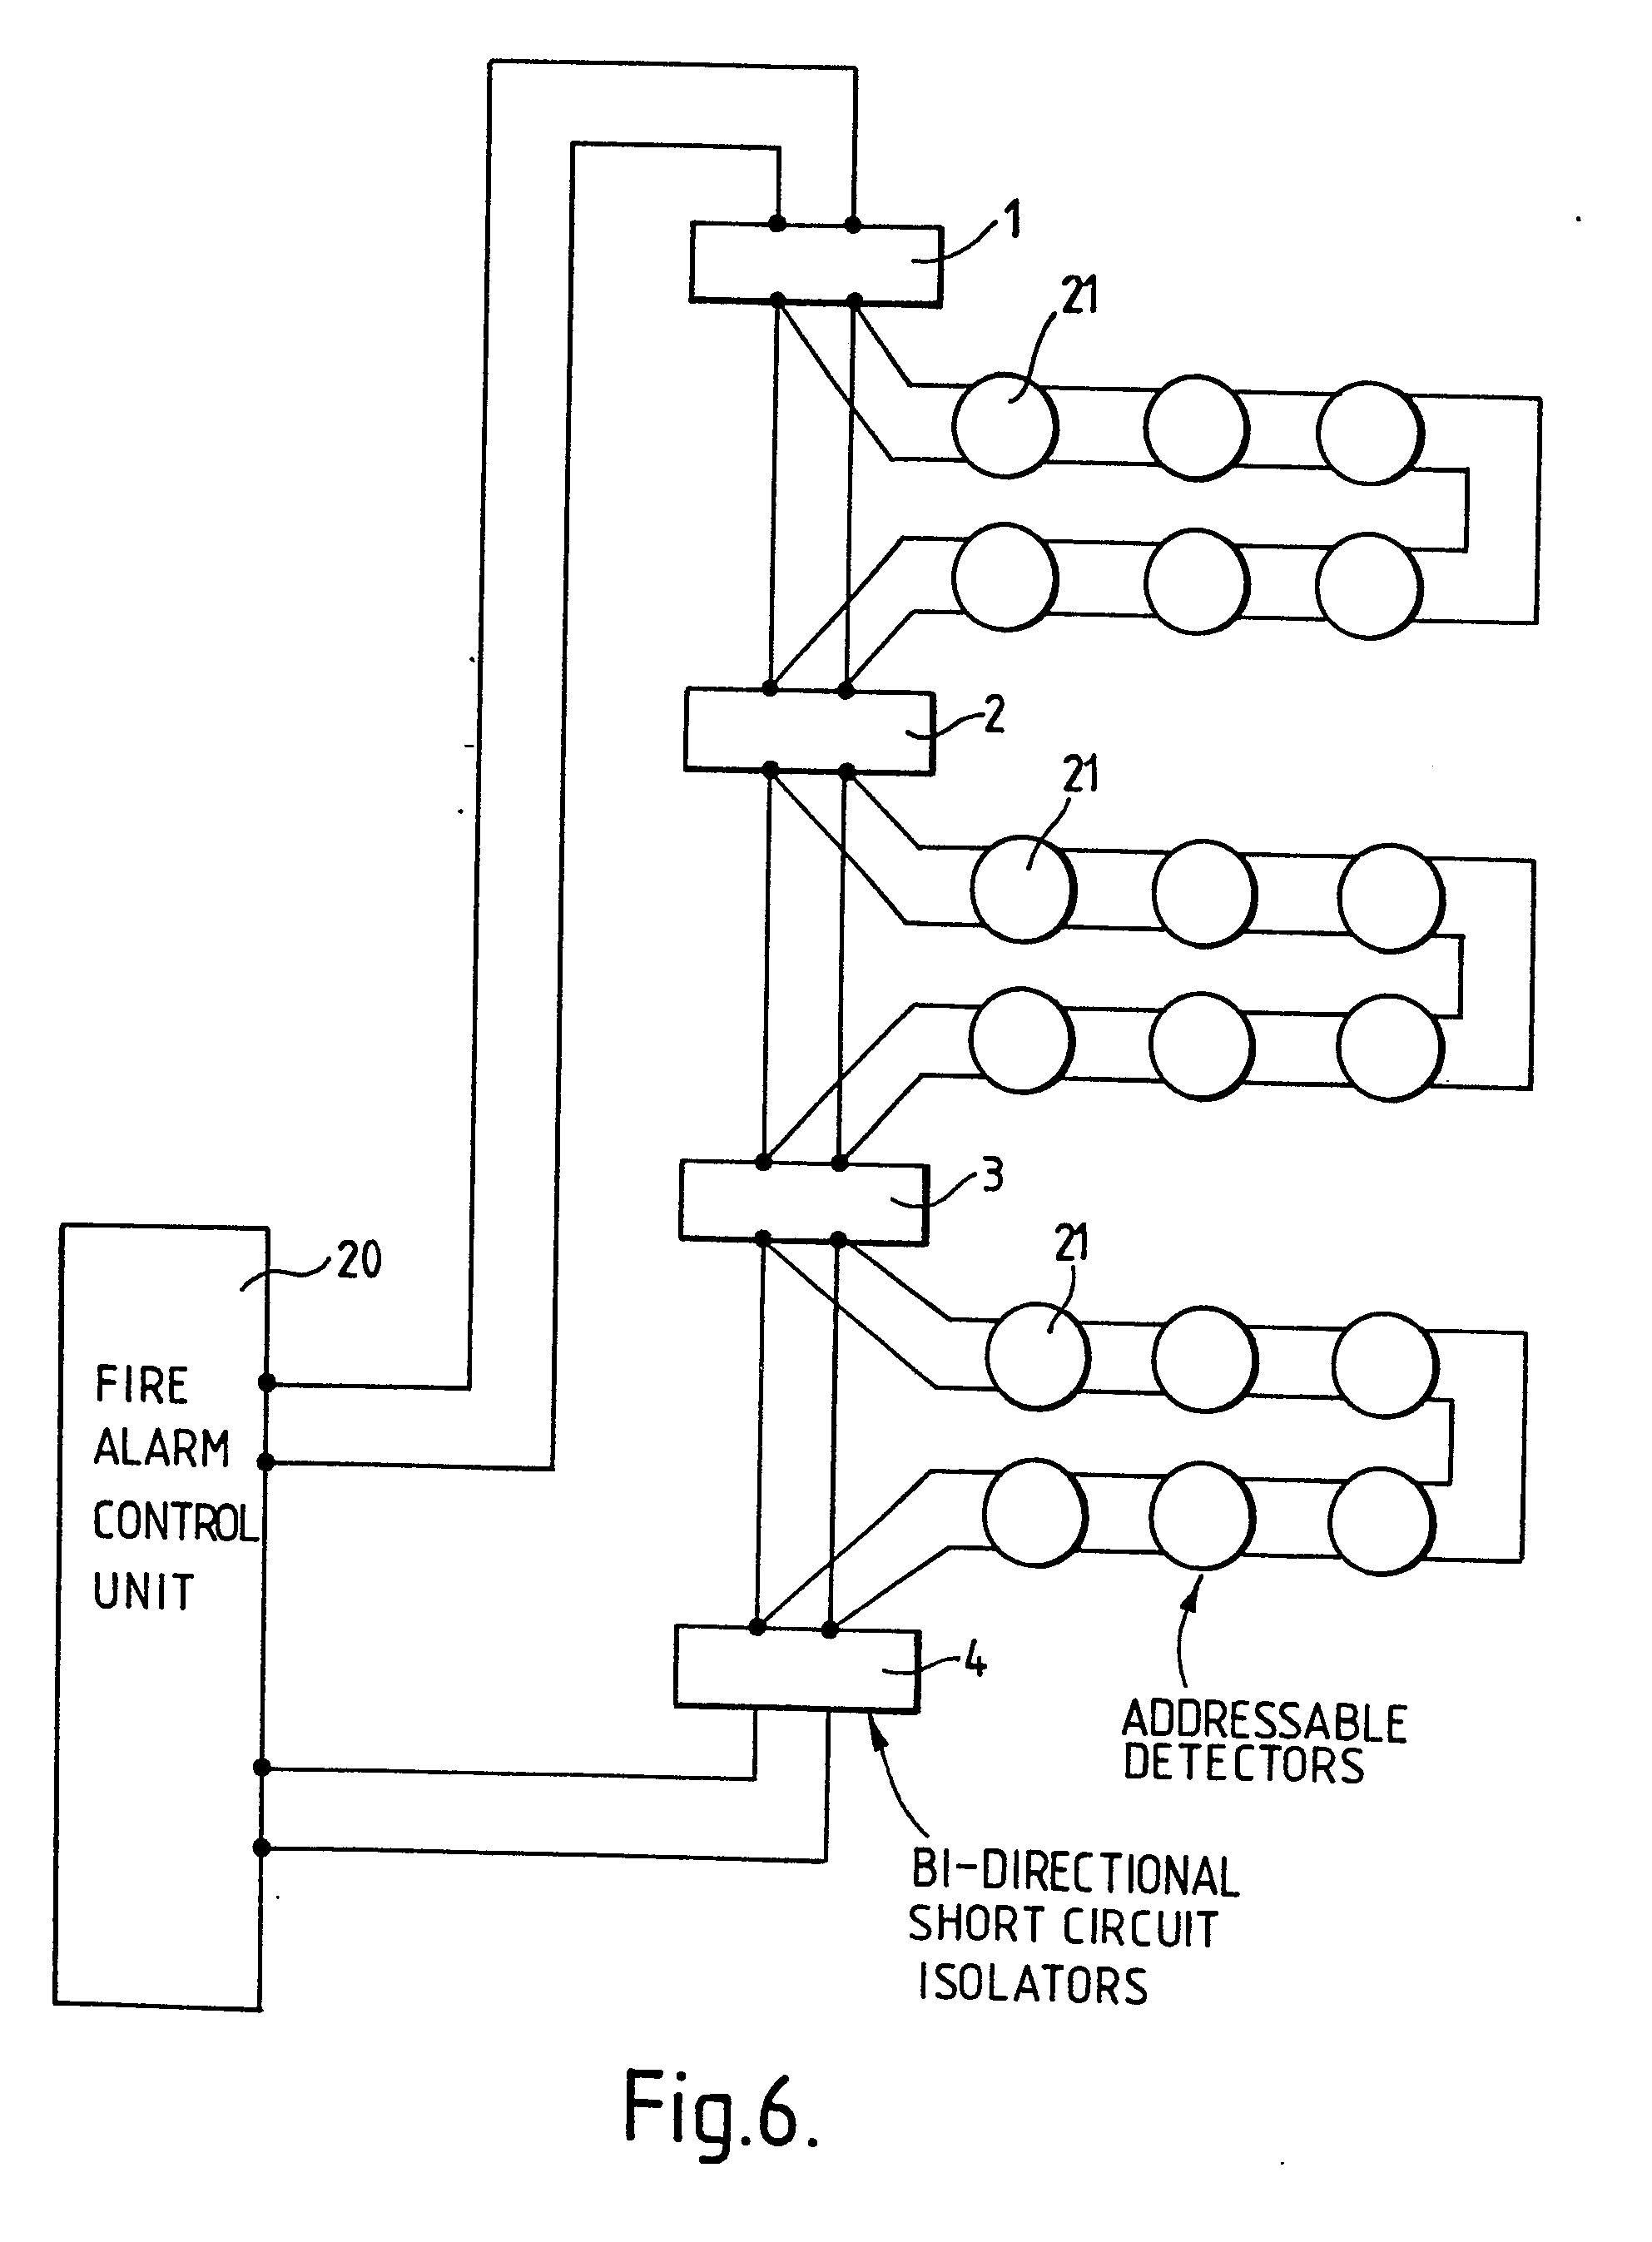 imgf0005 addressable fire alarm circuit diagram circuit and schematics fire alarm wiring schematic at crackthecode.co